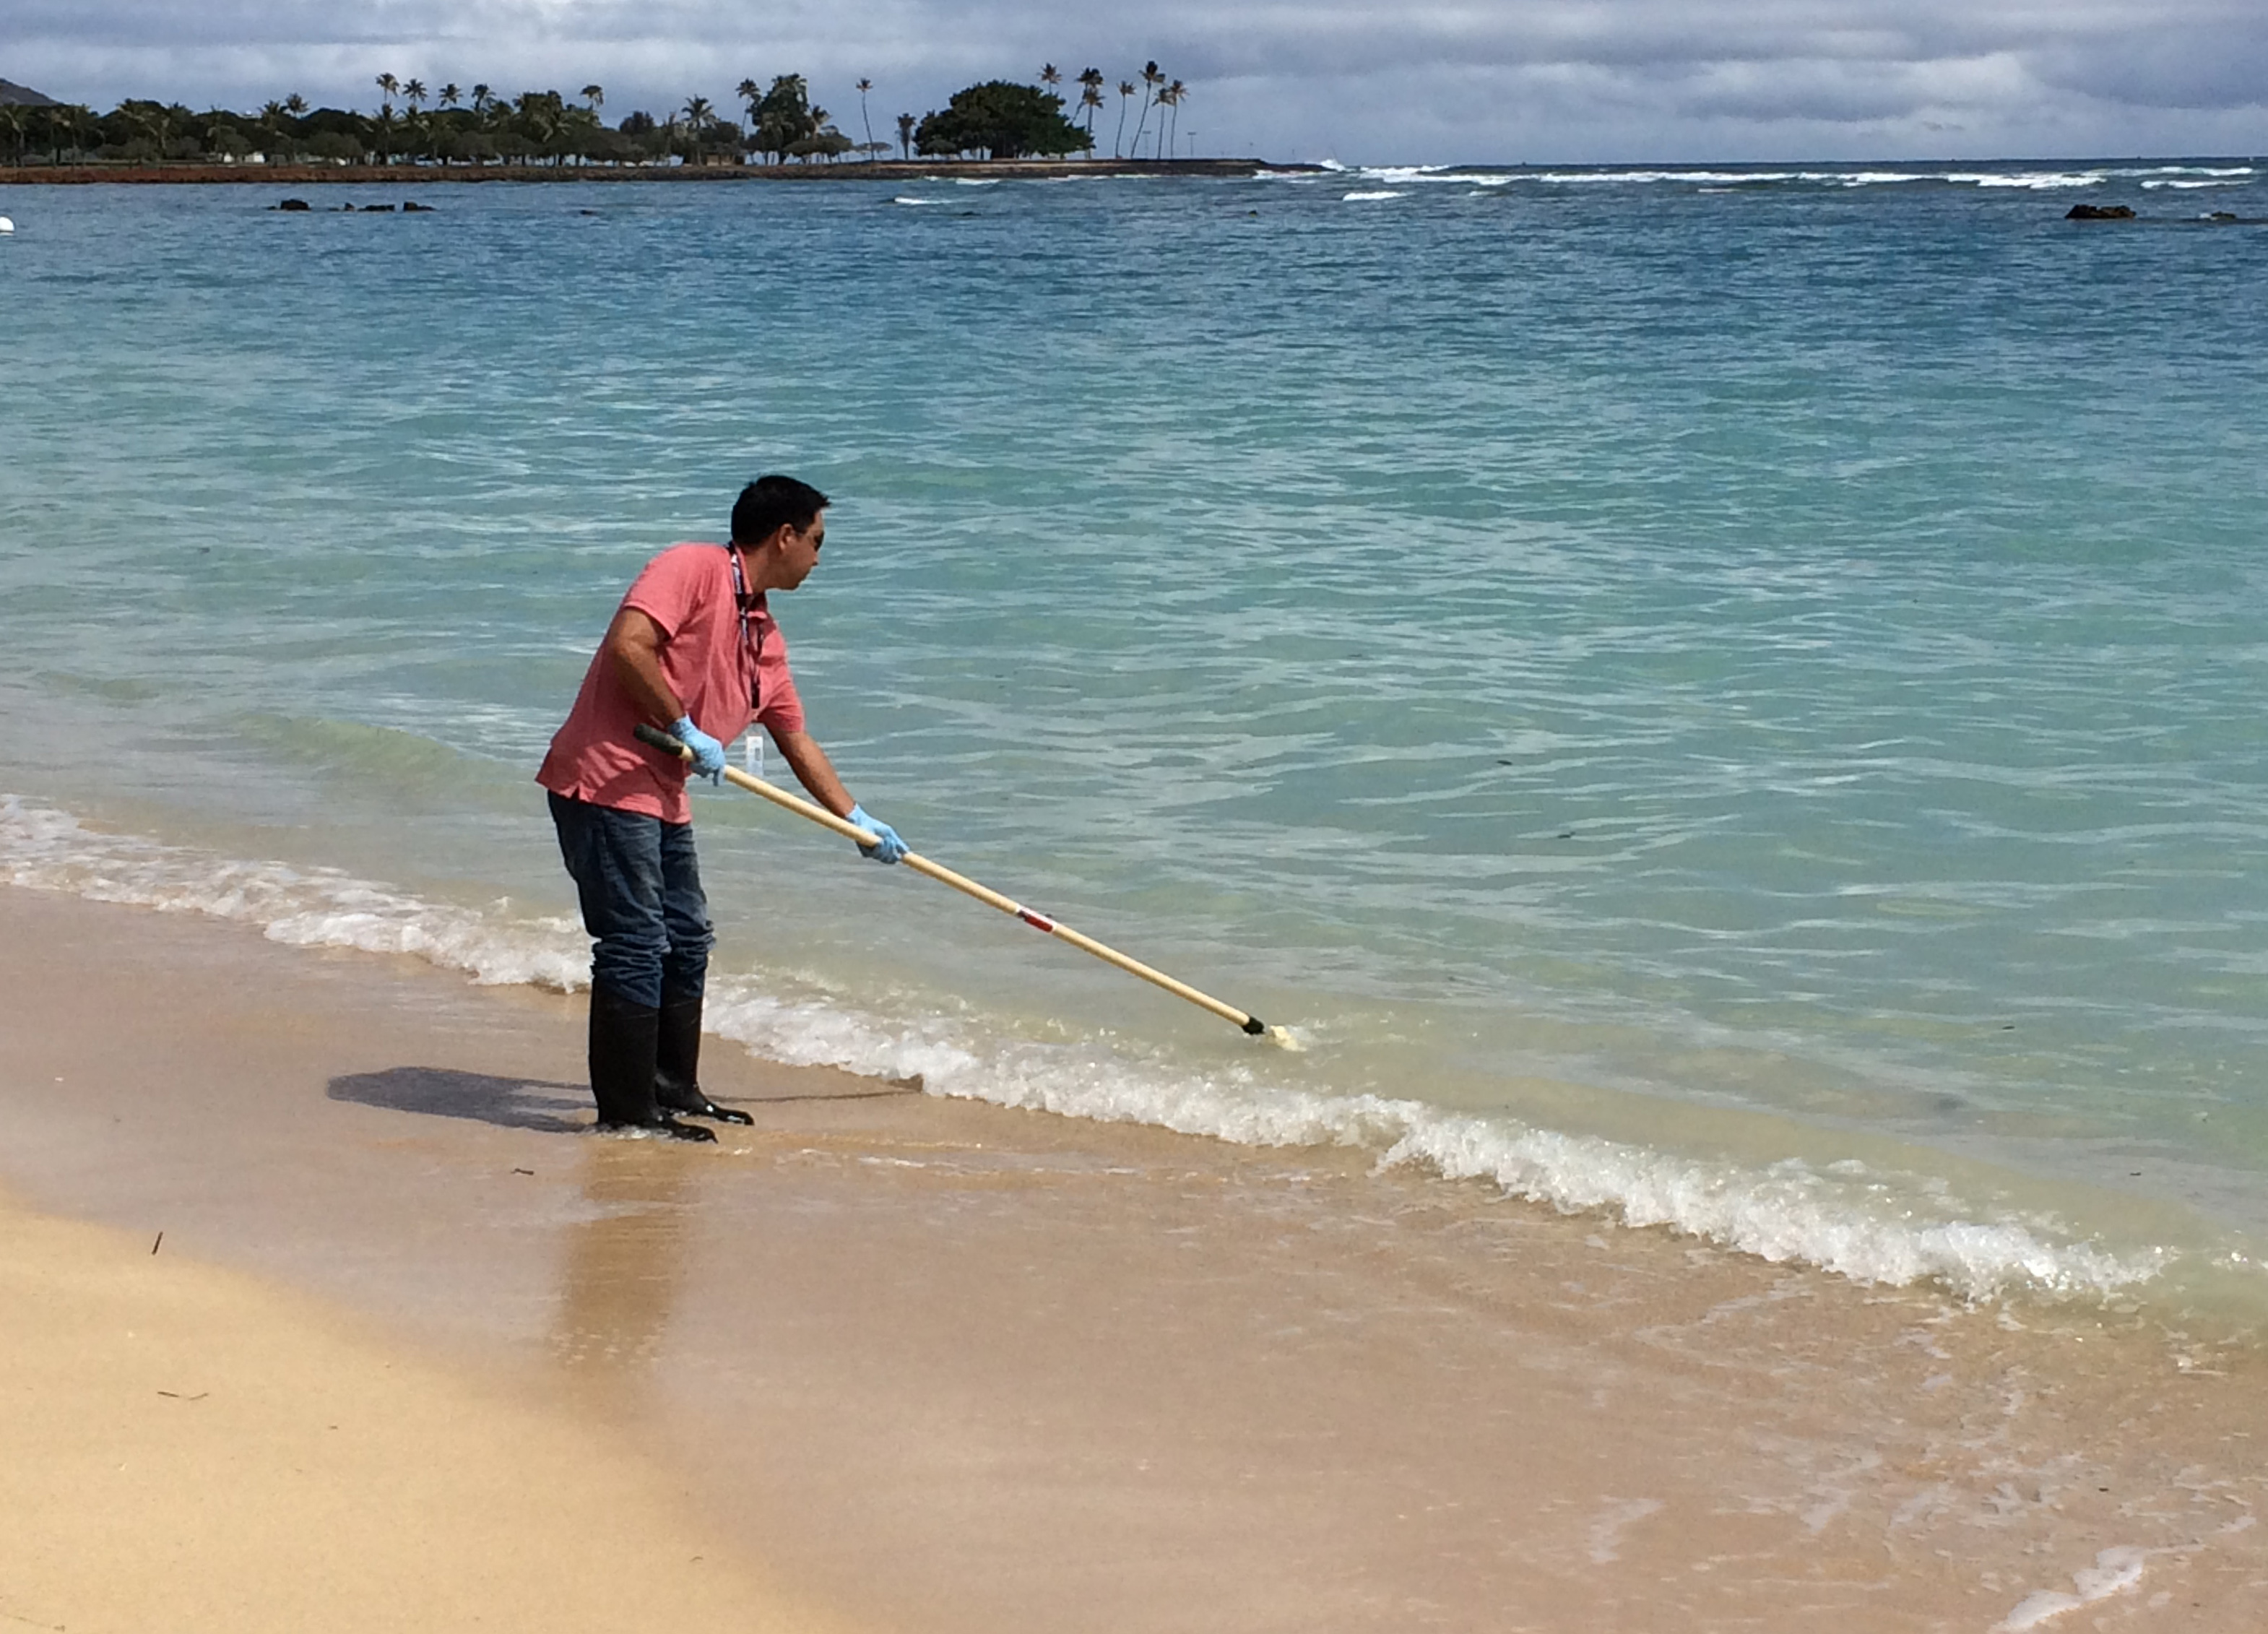 Scott Murakawa, of the Hawaii Department of Health, takes a water quality sample at Ala Moana Beach Park in Honolulu, Tuesday, August 25, 2015. Stretches of Waikiki's white sands and blue waters were deserted Tuesday after officials warned that heavy rains triggered a half-million-gallon sewage spill near Hawaii's world-famous tourist district. Photo: AP